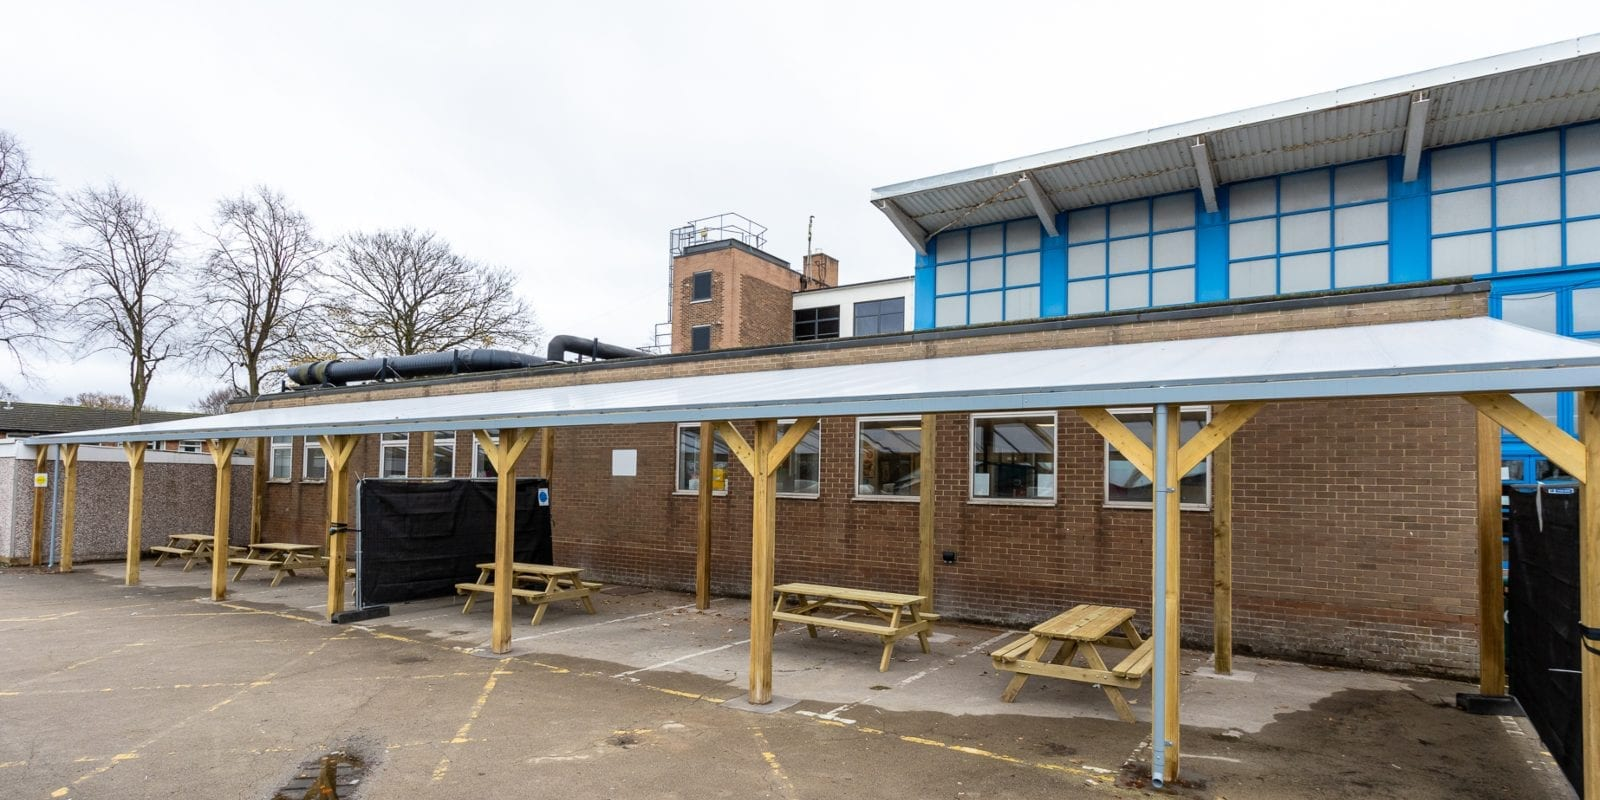 Timber straight roof shelter we designed for Handsworth Wood Girls' Academy